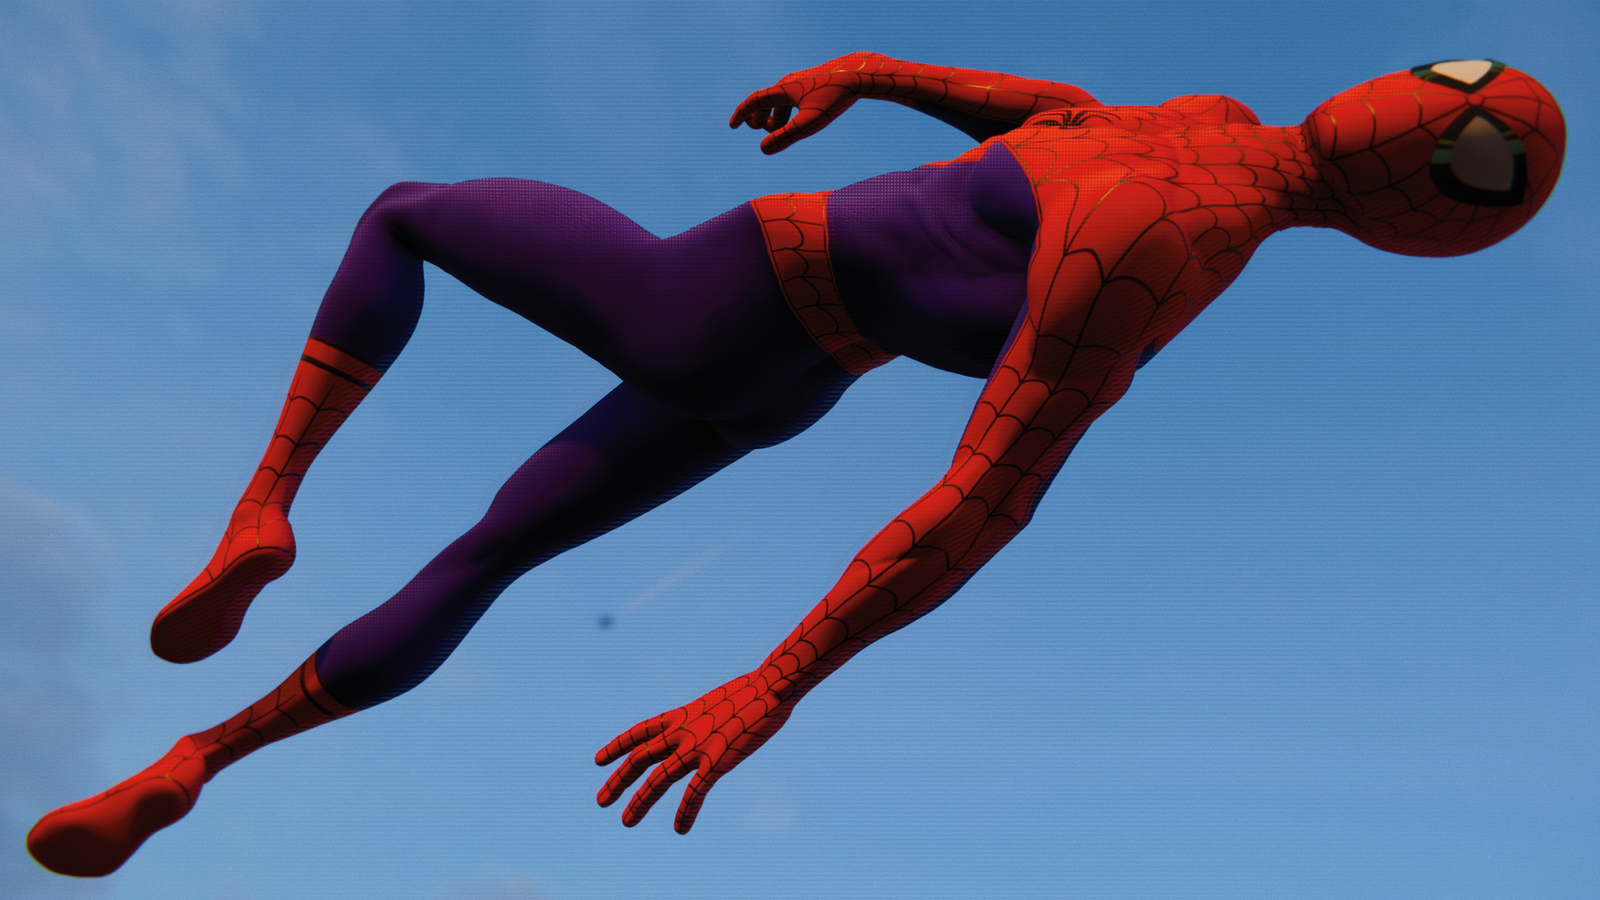 Spider Man Ps4 S Into The Spider Verse Suit Looks Amazing